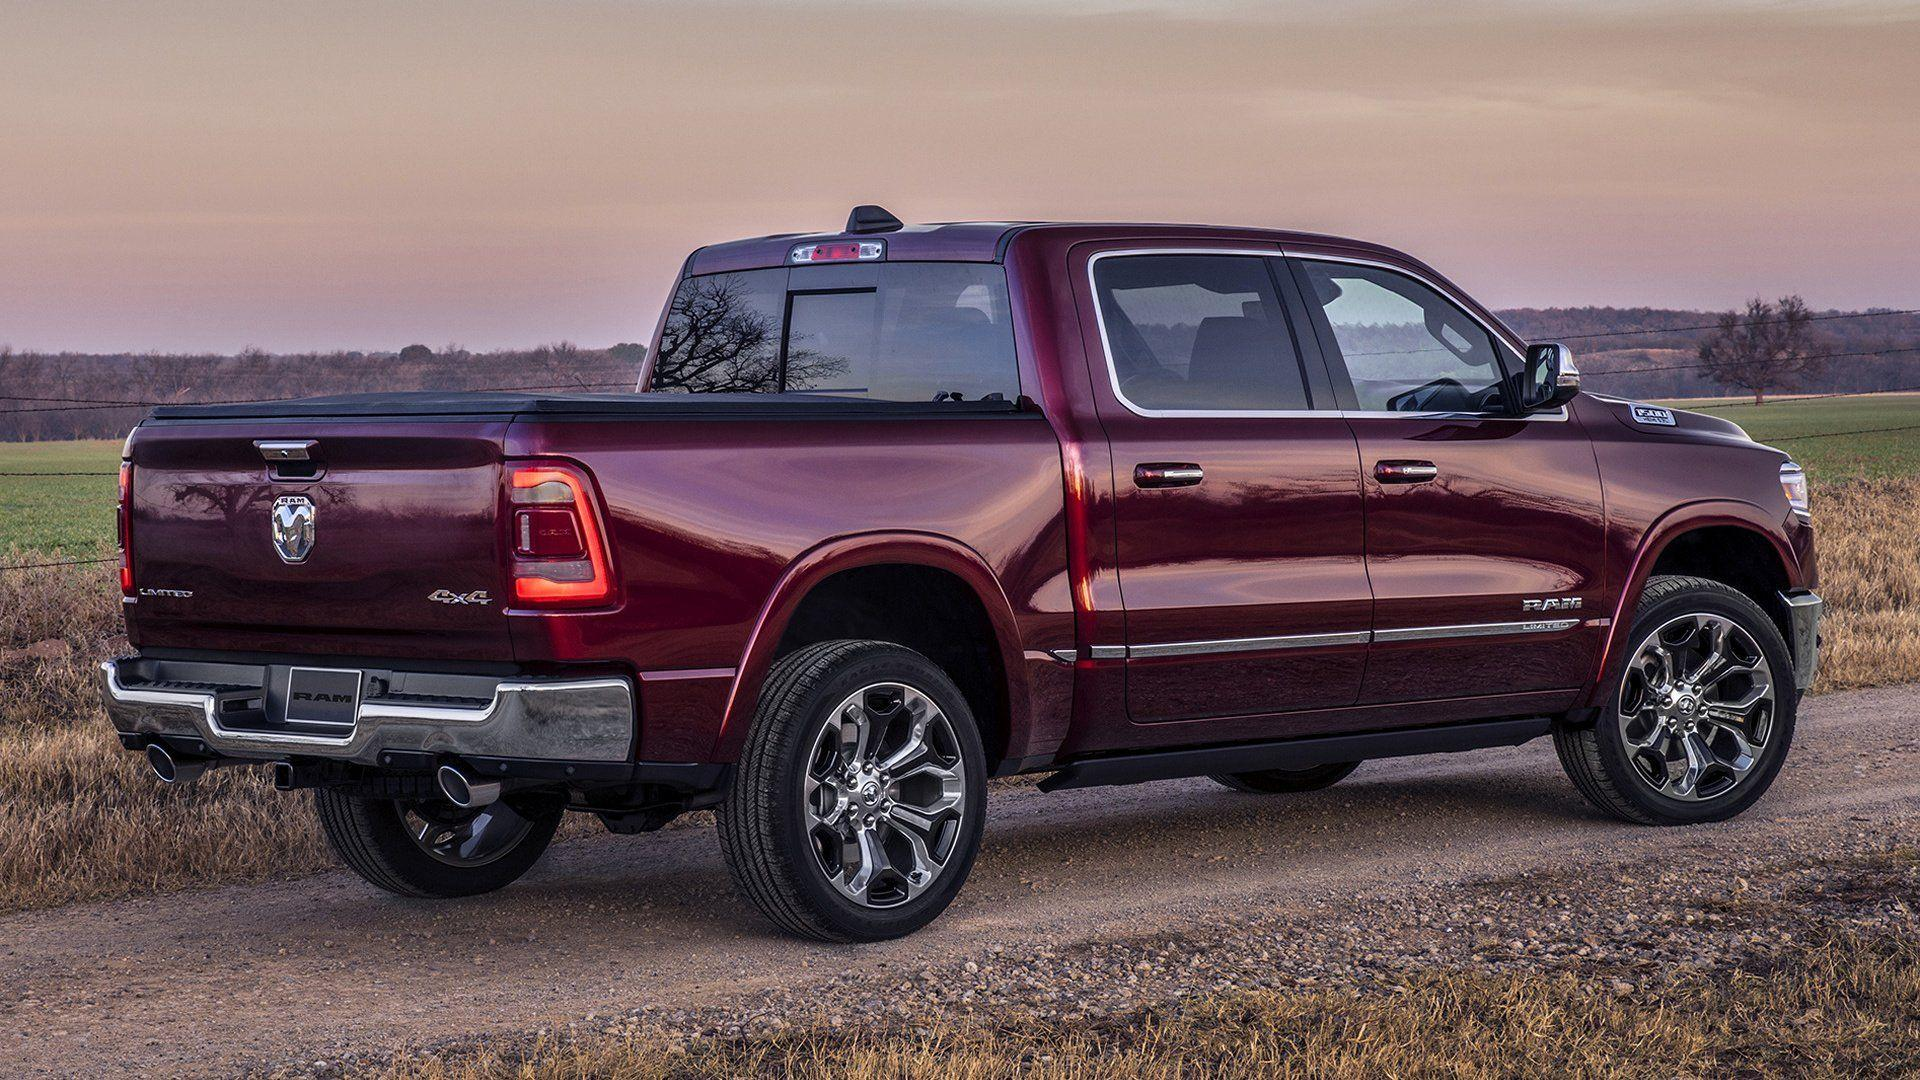 2019 Ram 1500 Limited Crew Cab Full HD Wallpaper and Background ...